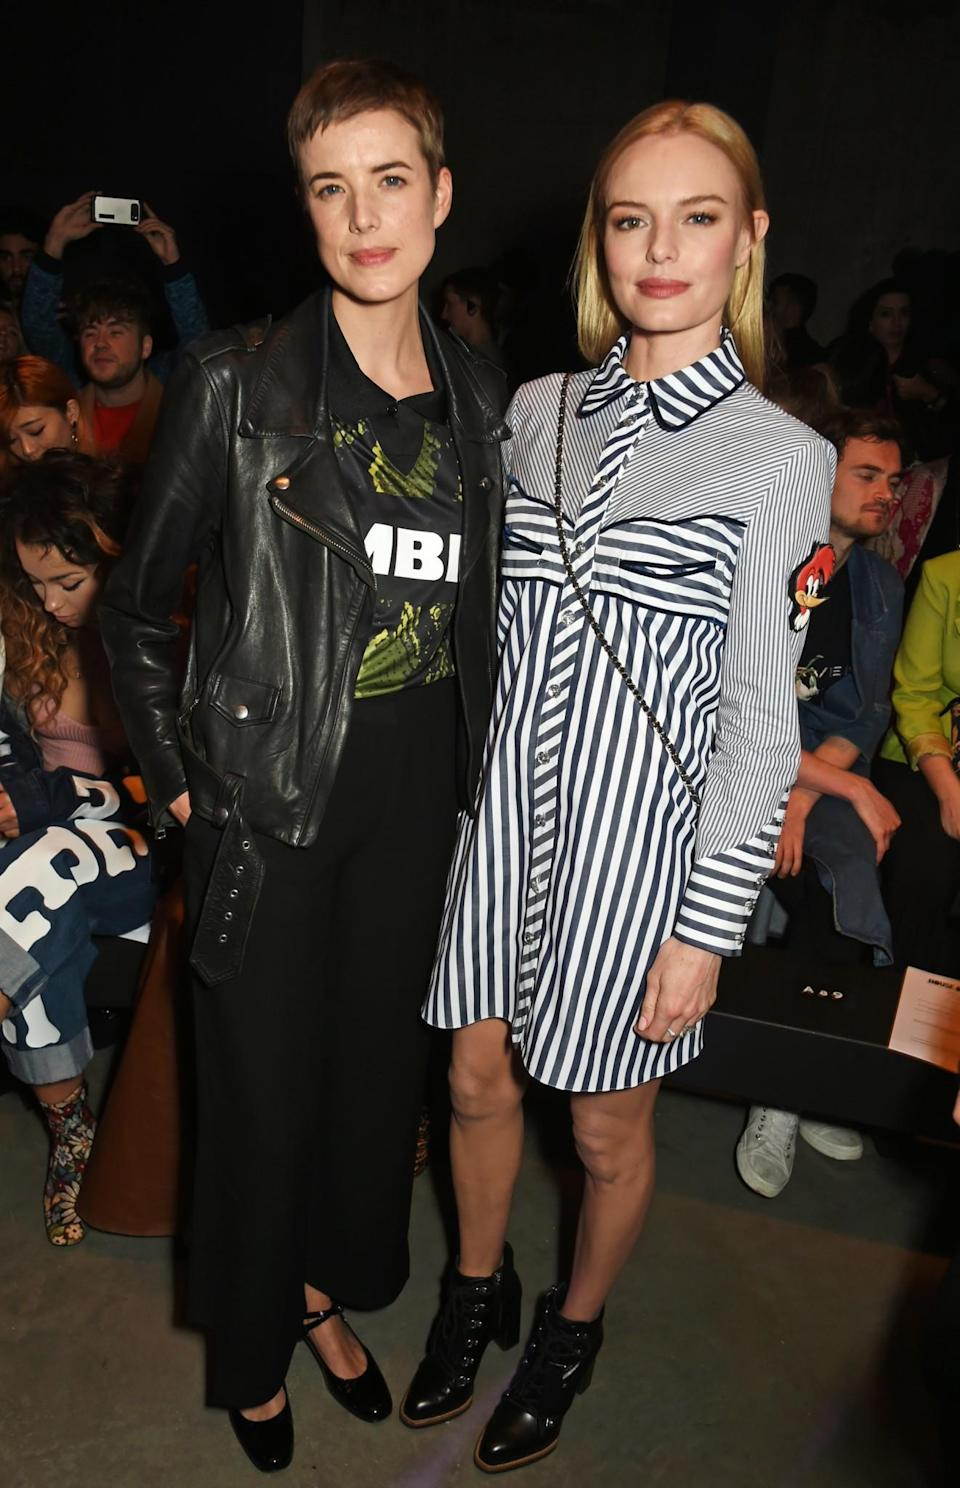 <p>Agyness Deyn made a return to Fashion Week alongside Kate Bosworth in a shirt dress from the new collection. <i>[Photo: Getty]</i> </p>